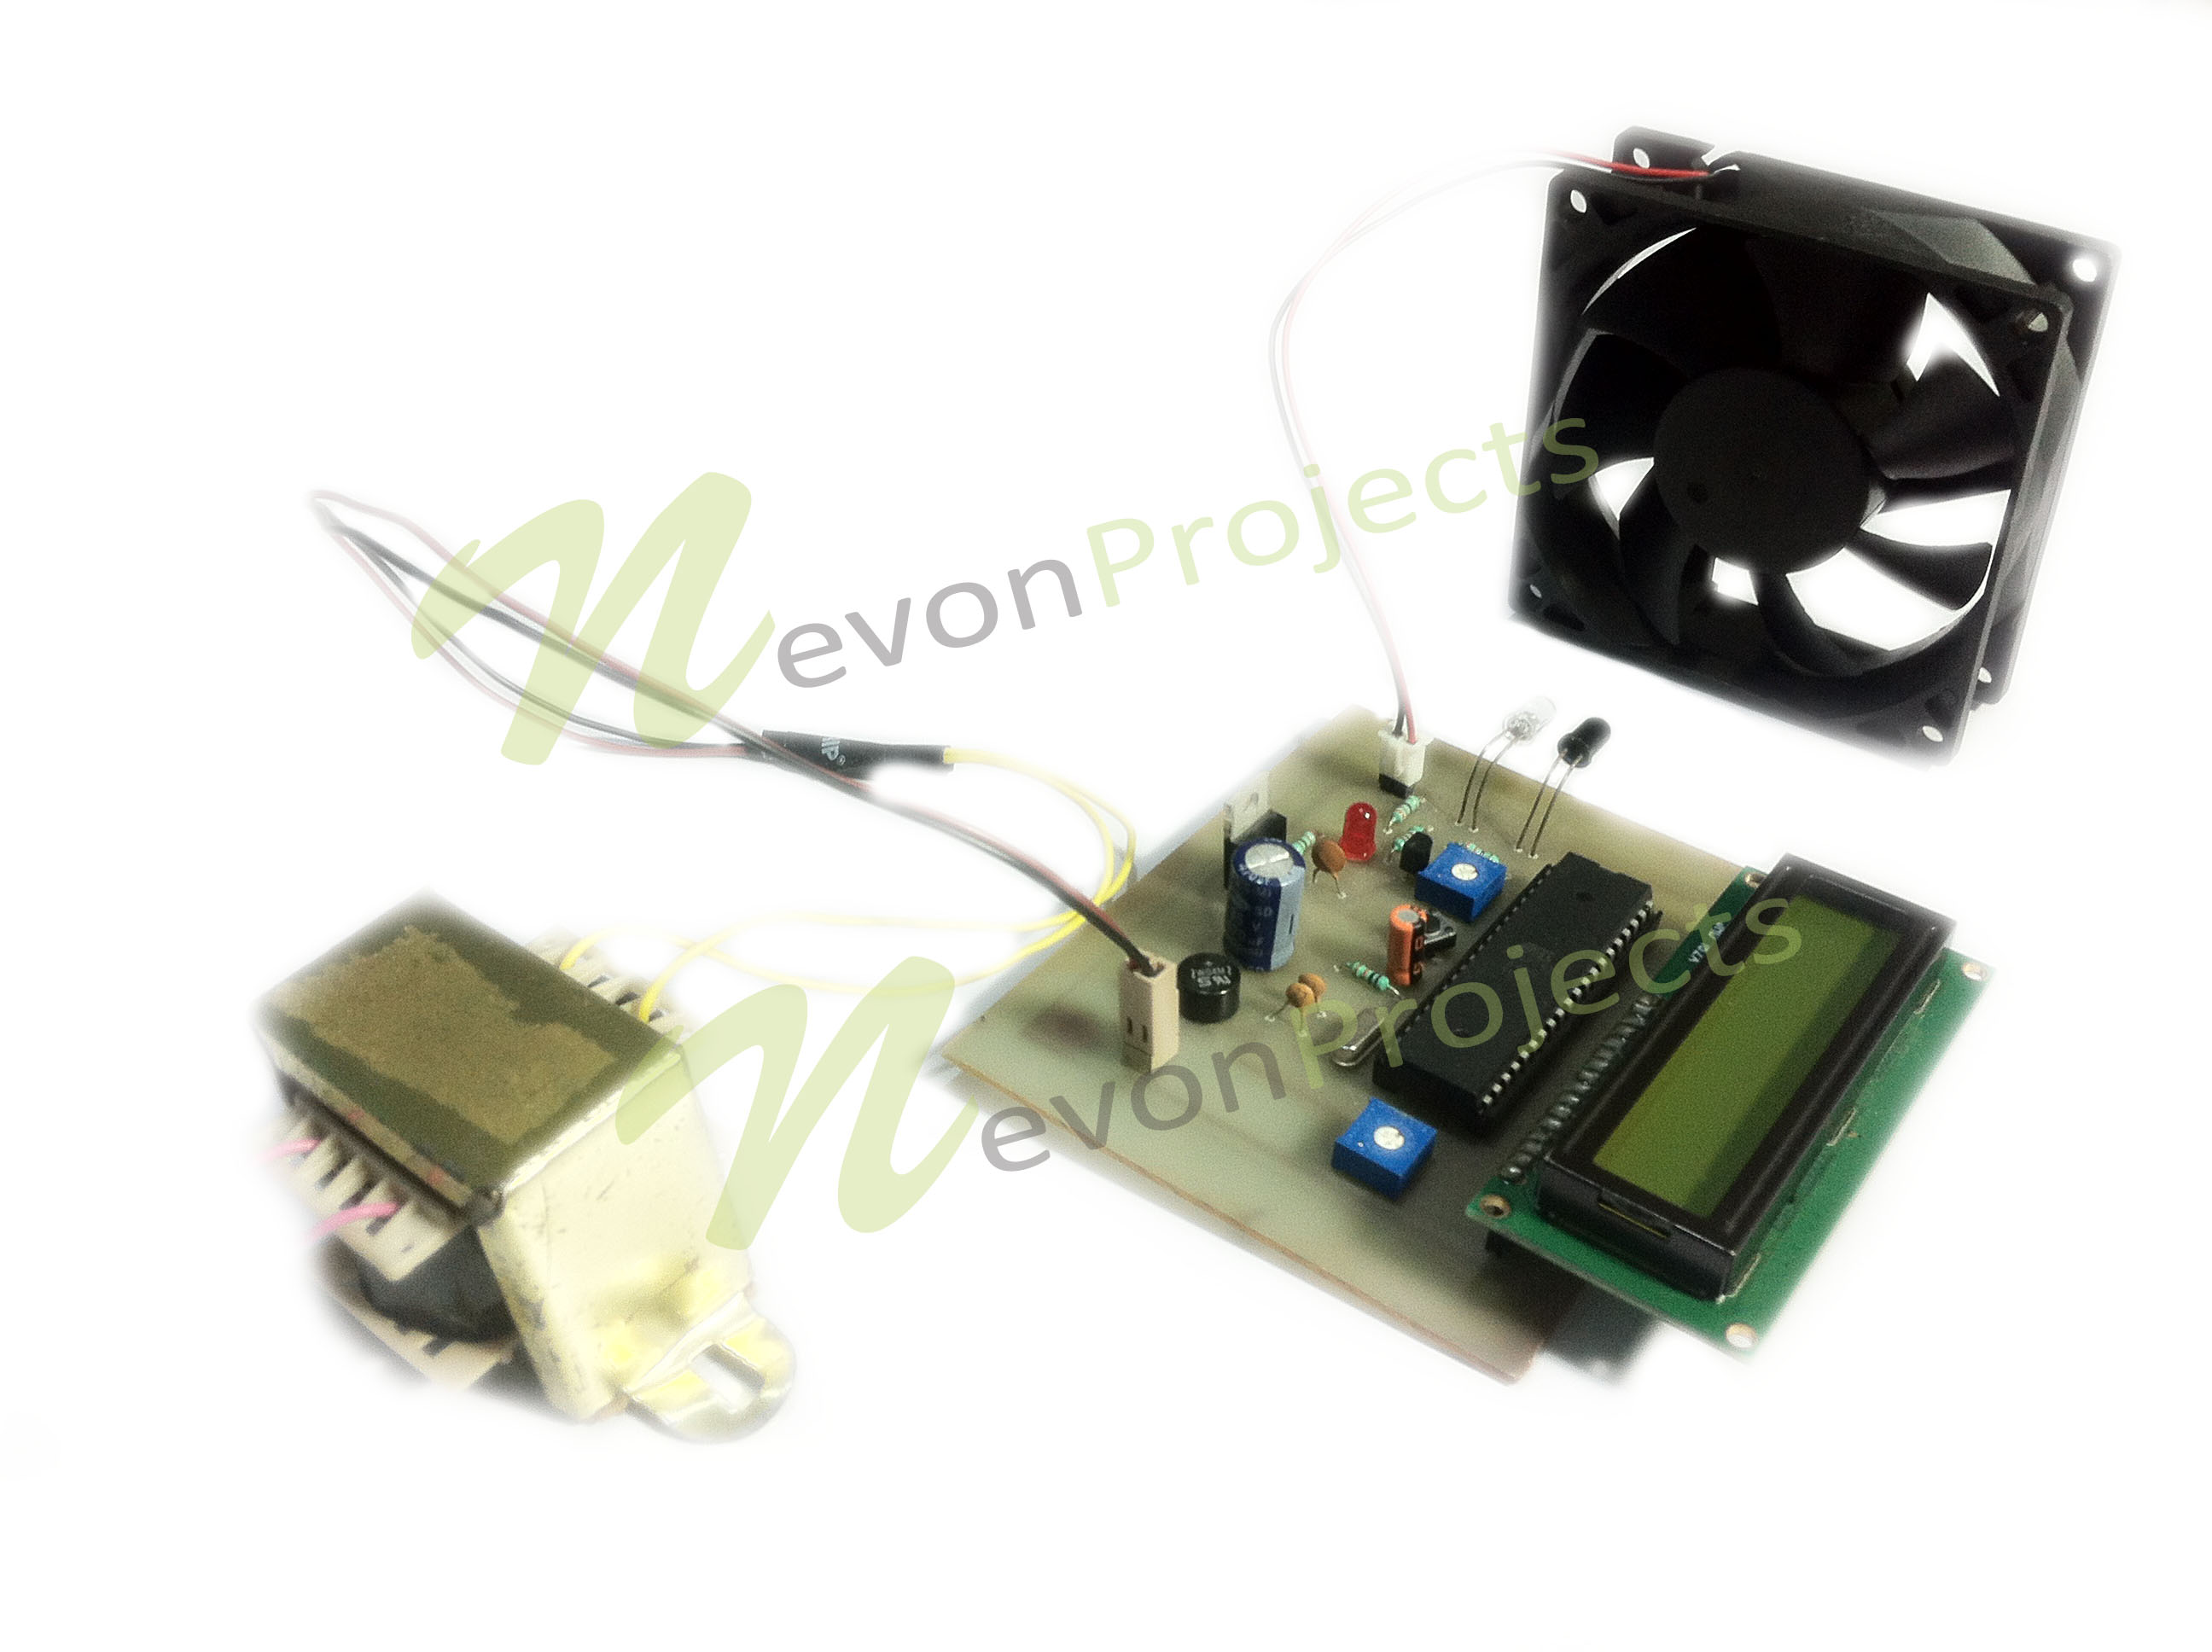 Zero Contact Tachometer Speedometer Project Nevonprojects Digital Using 8051